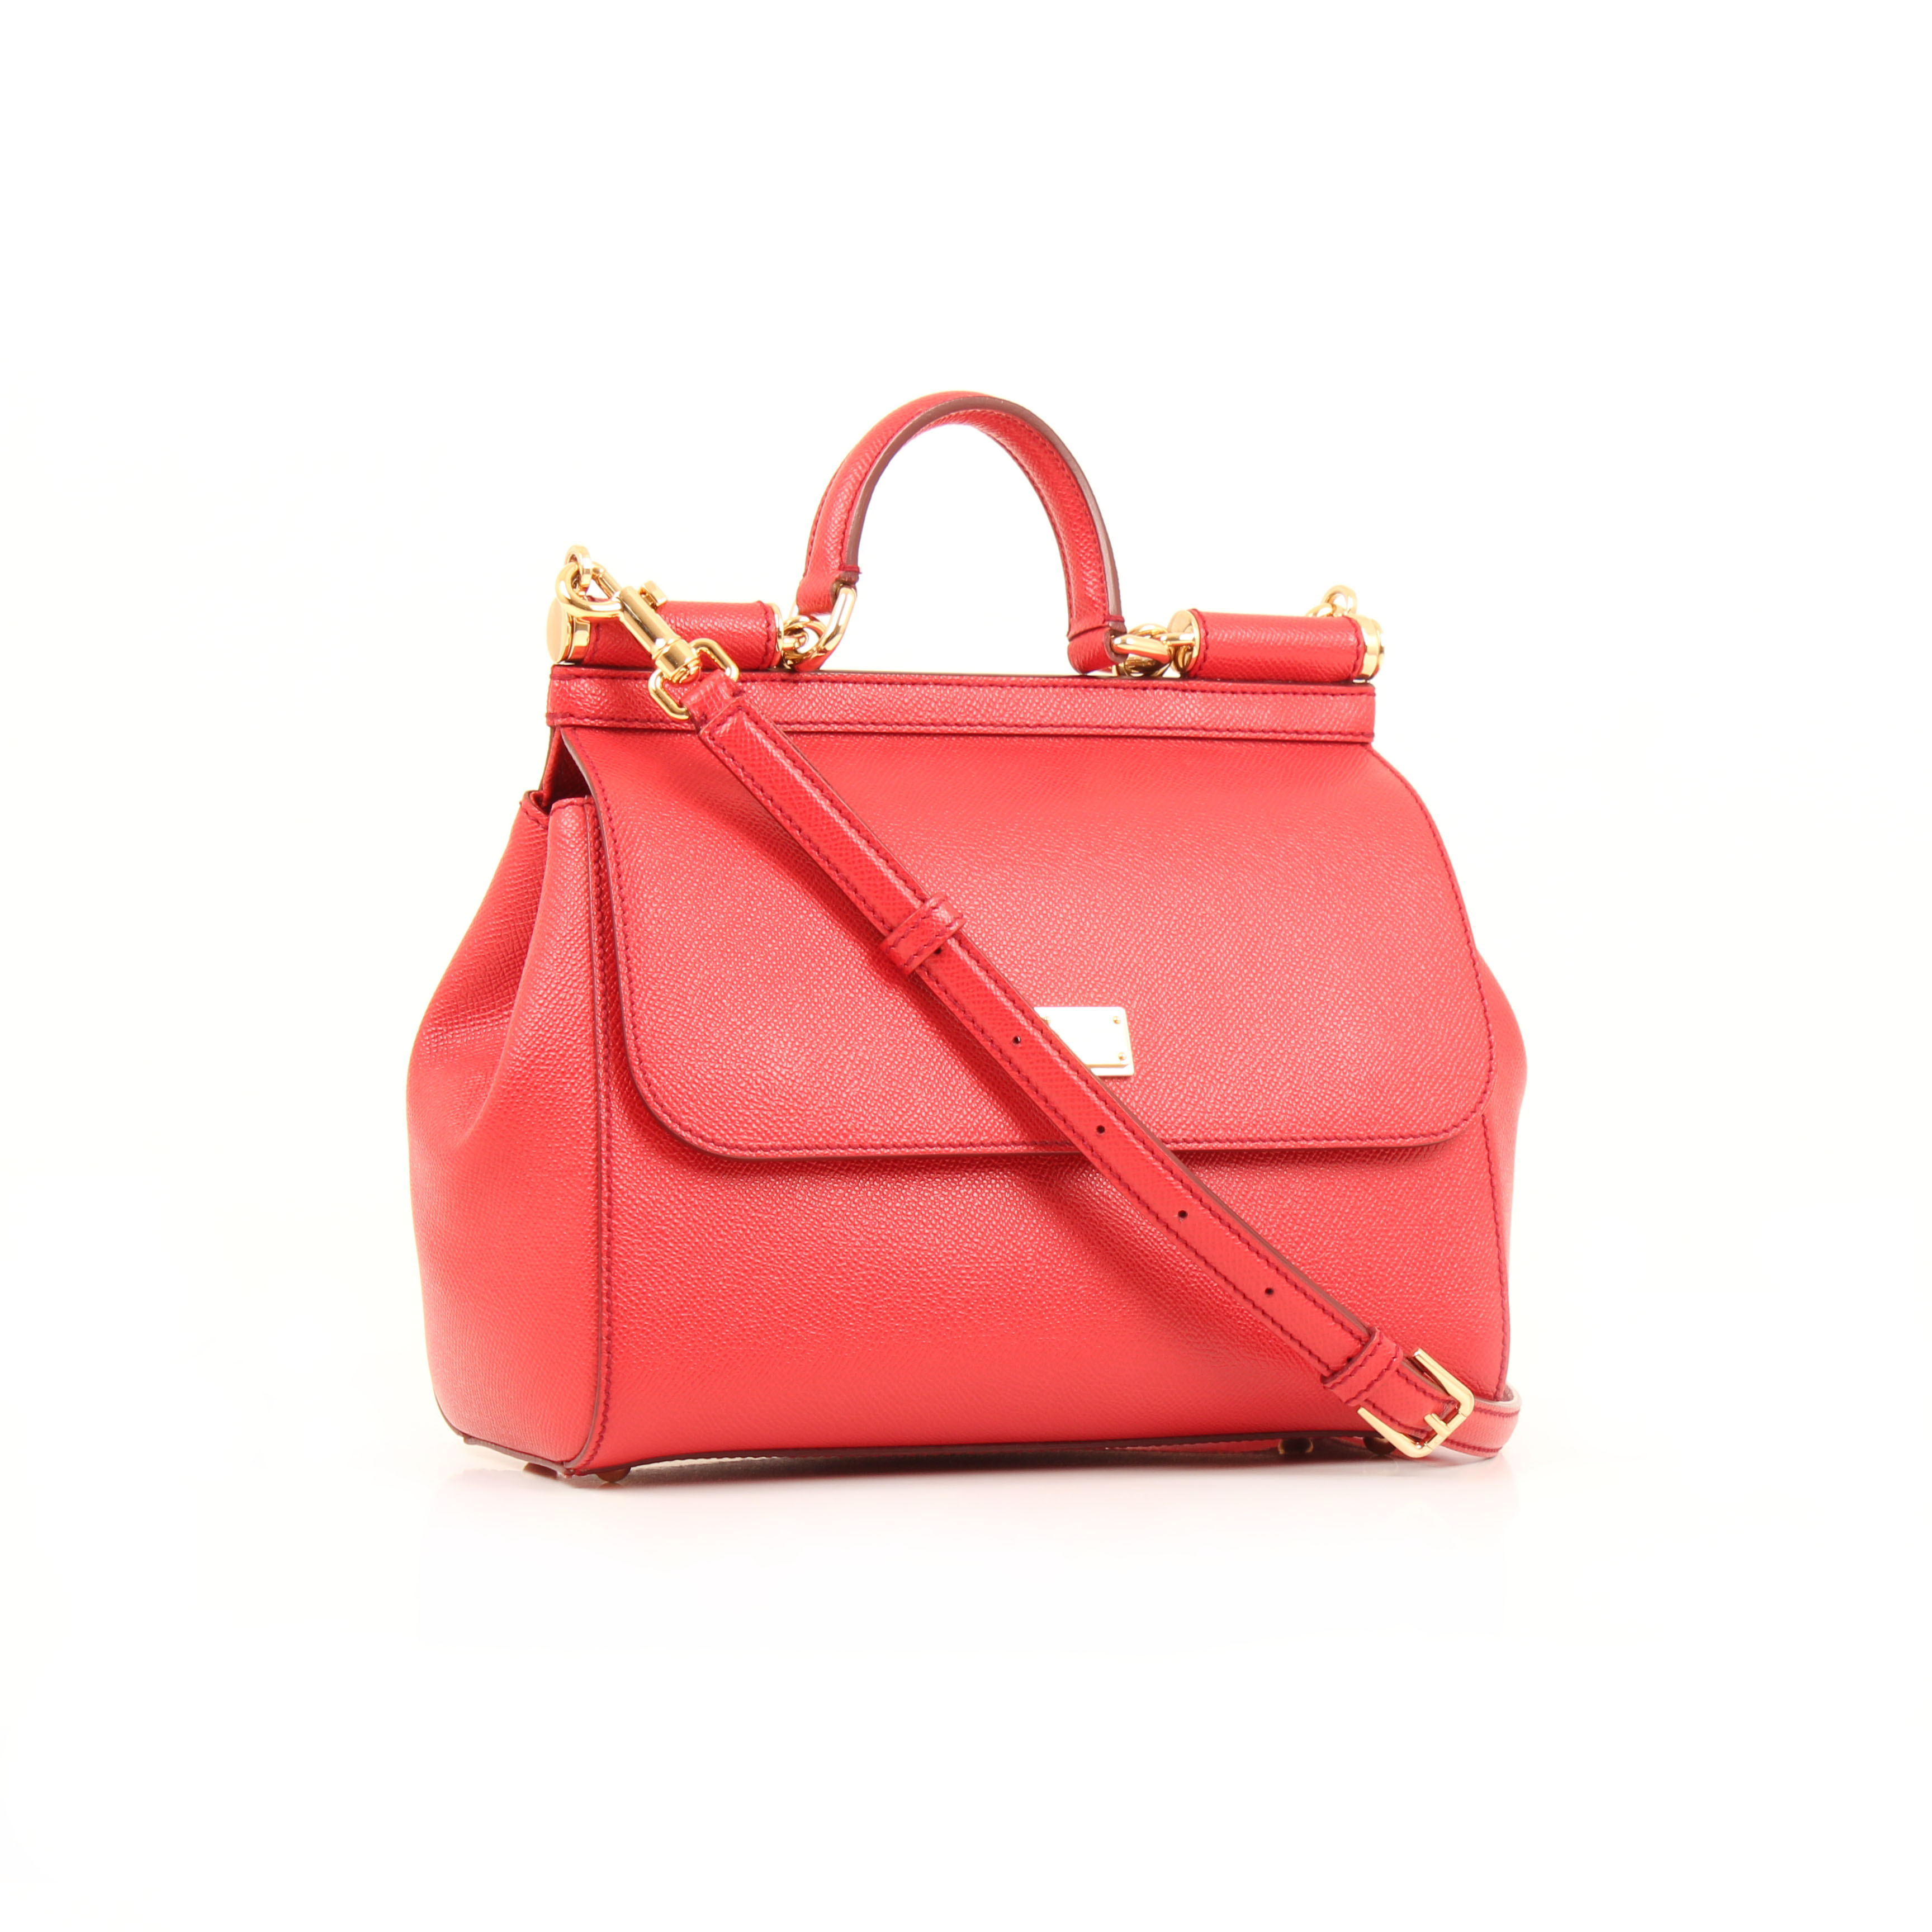 dolce gabbana sicily bag red grained leather general